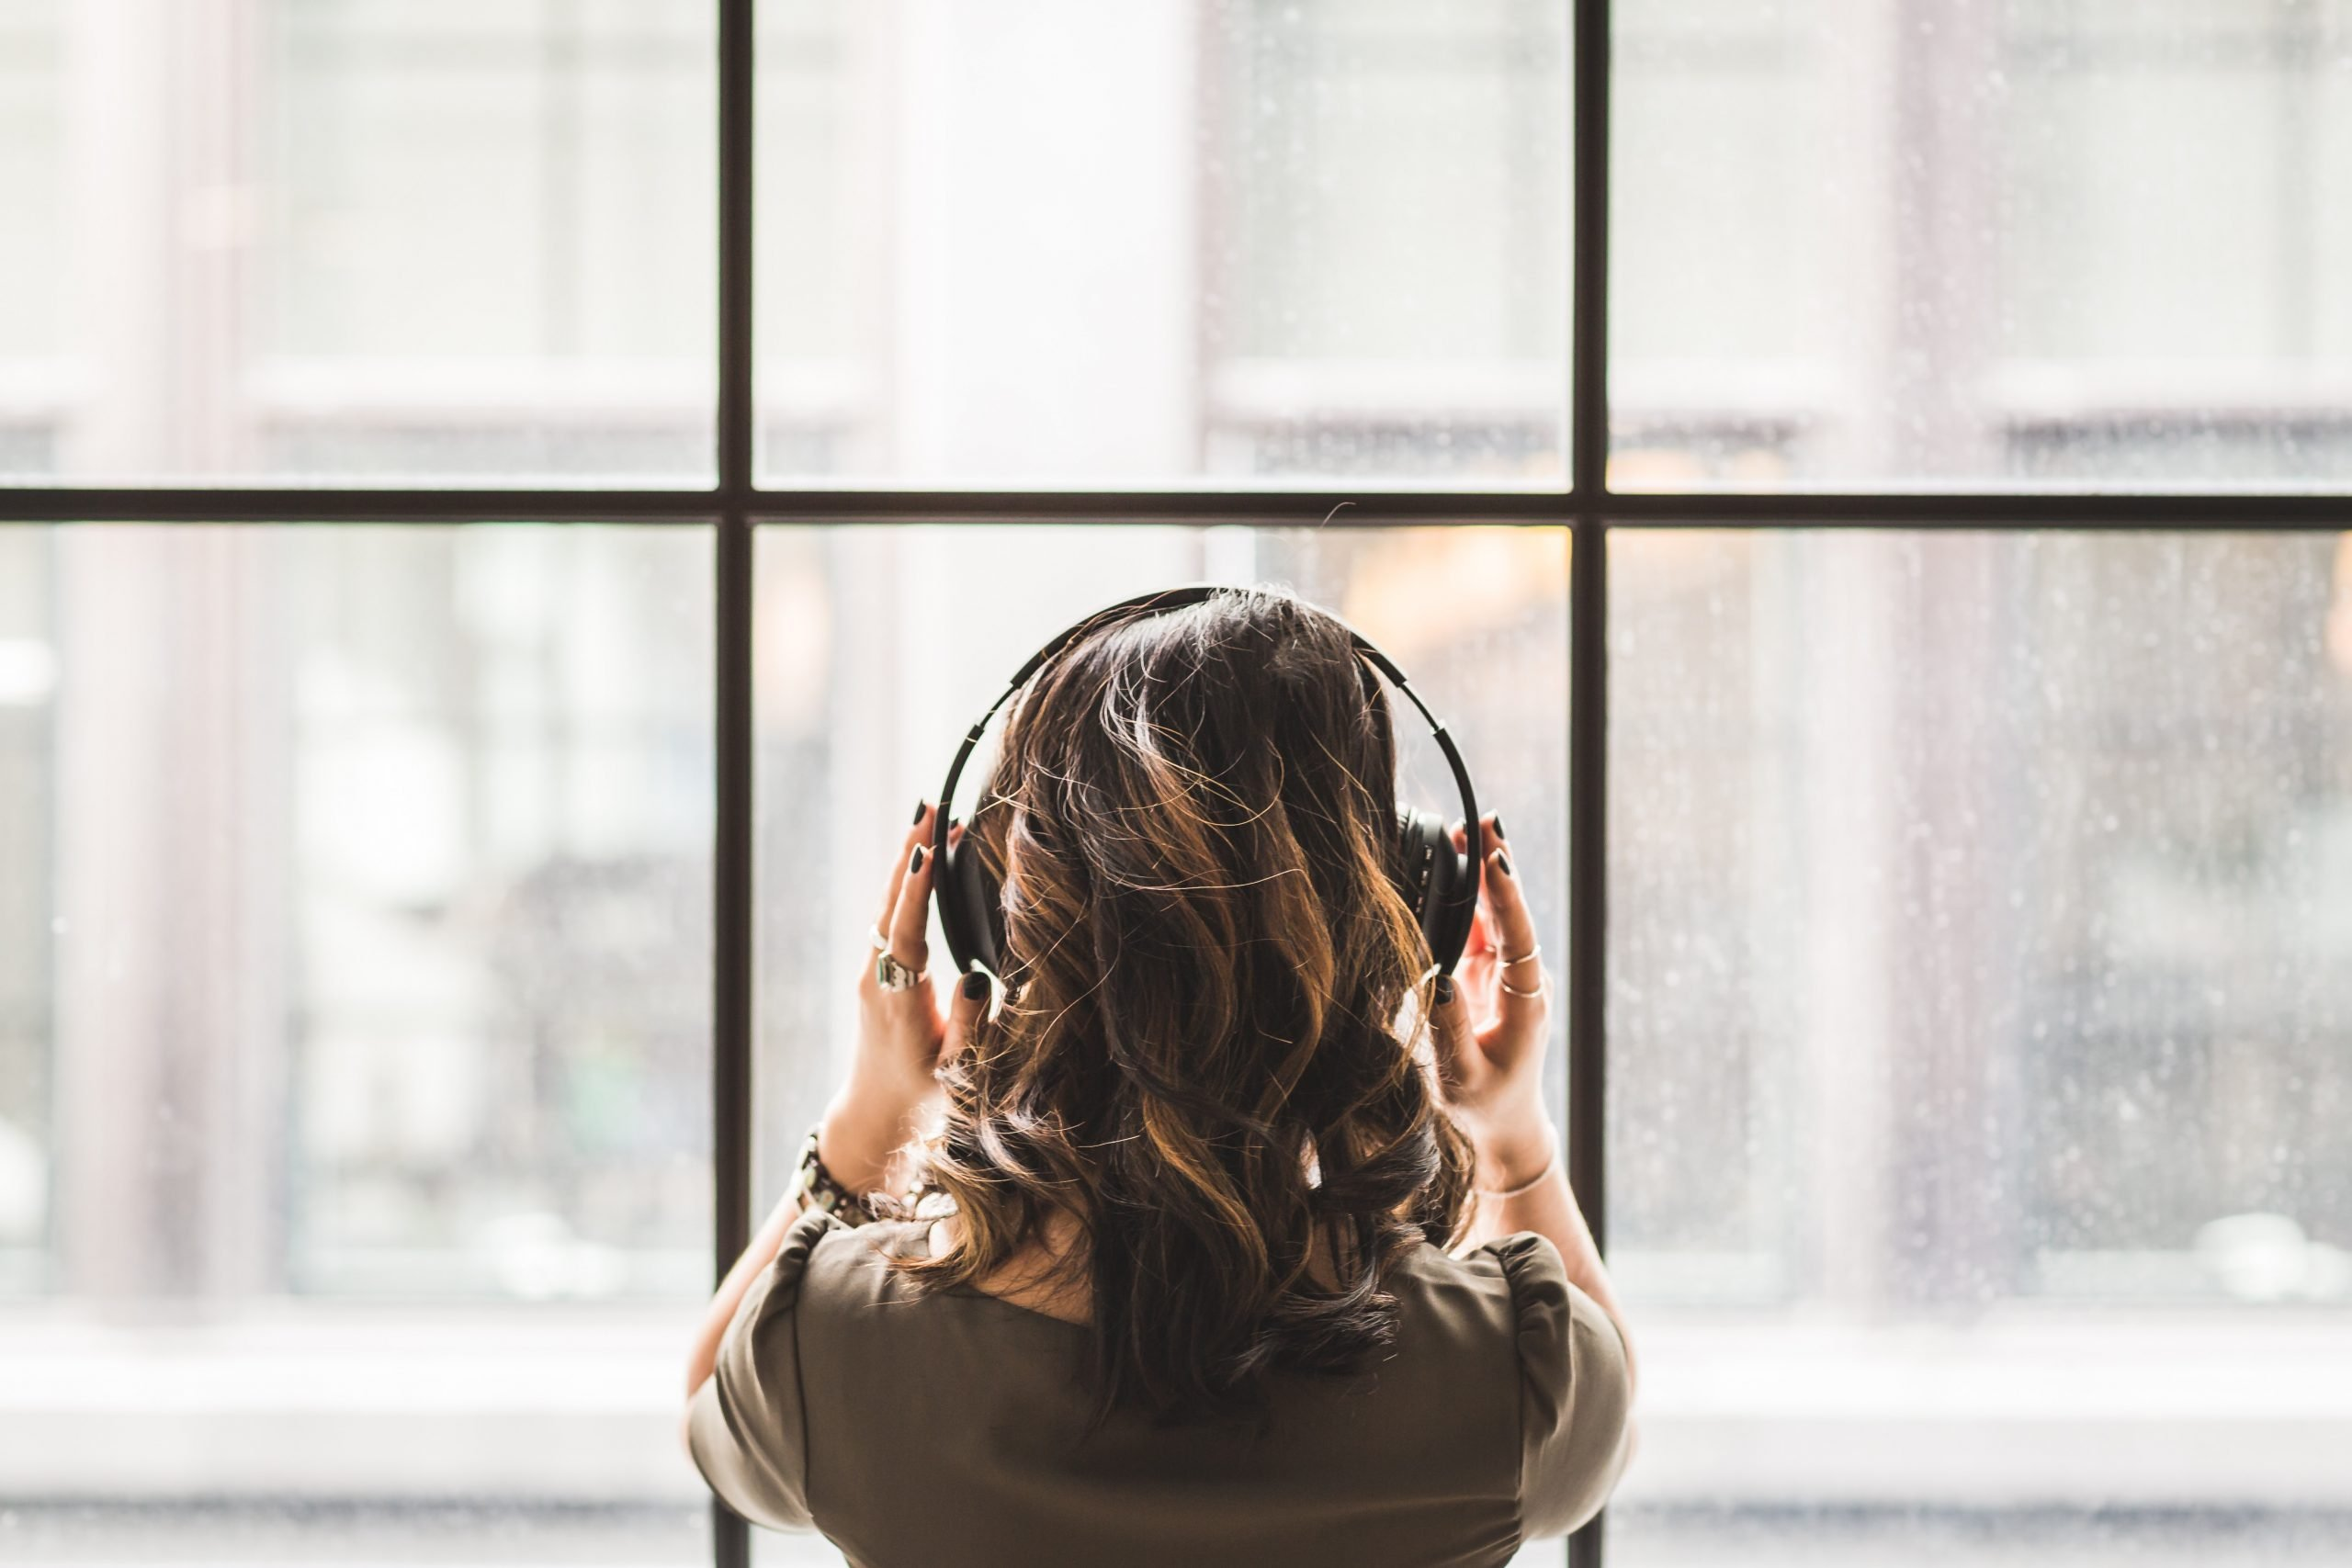 woman with headphones, looking out window